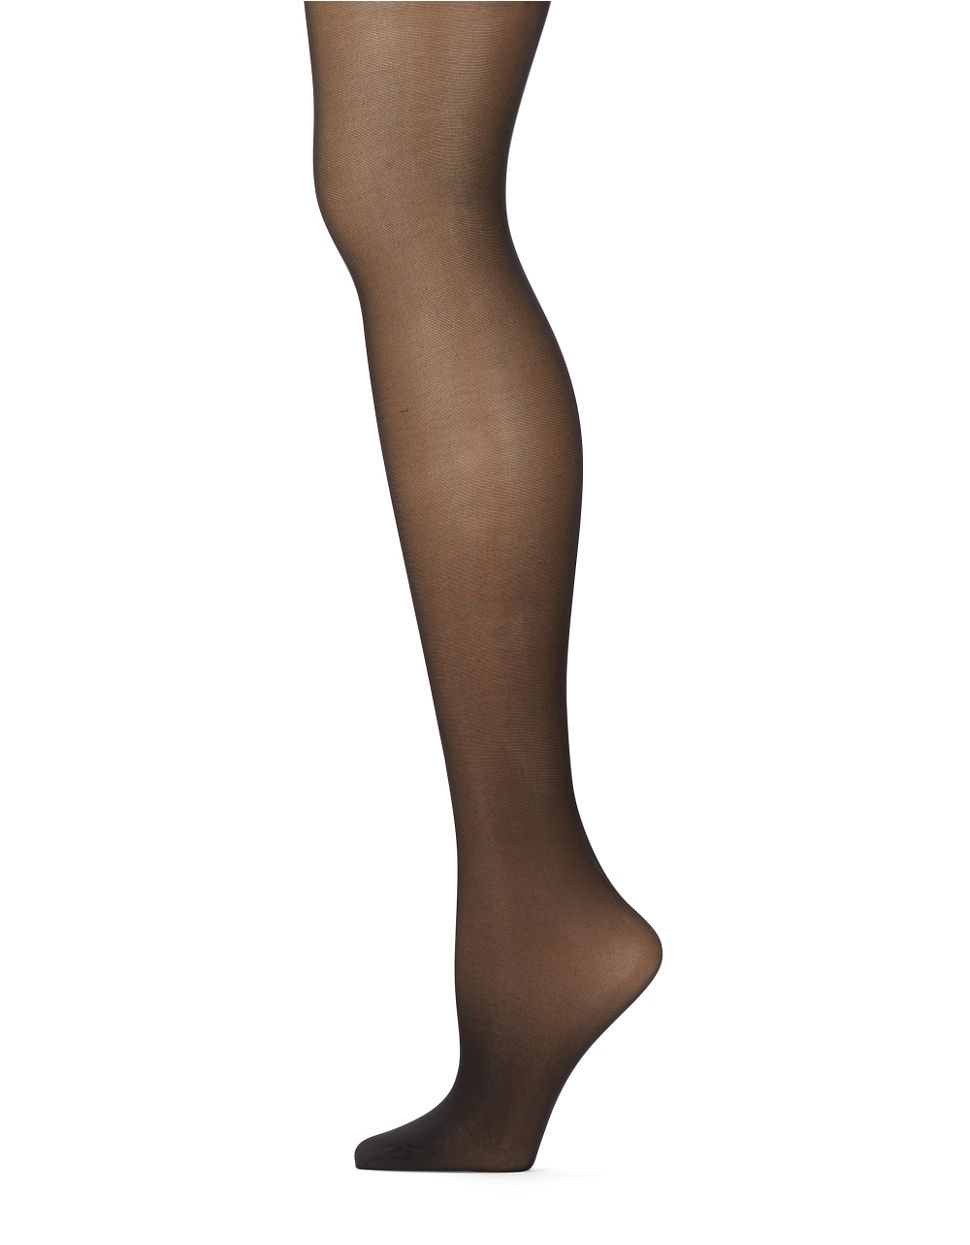 Calvin Klein Control Top Sheer Pantyhose In Black  Lyst-9894